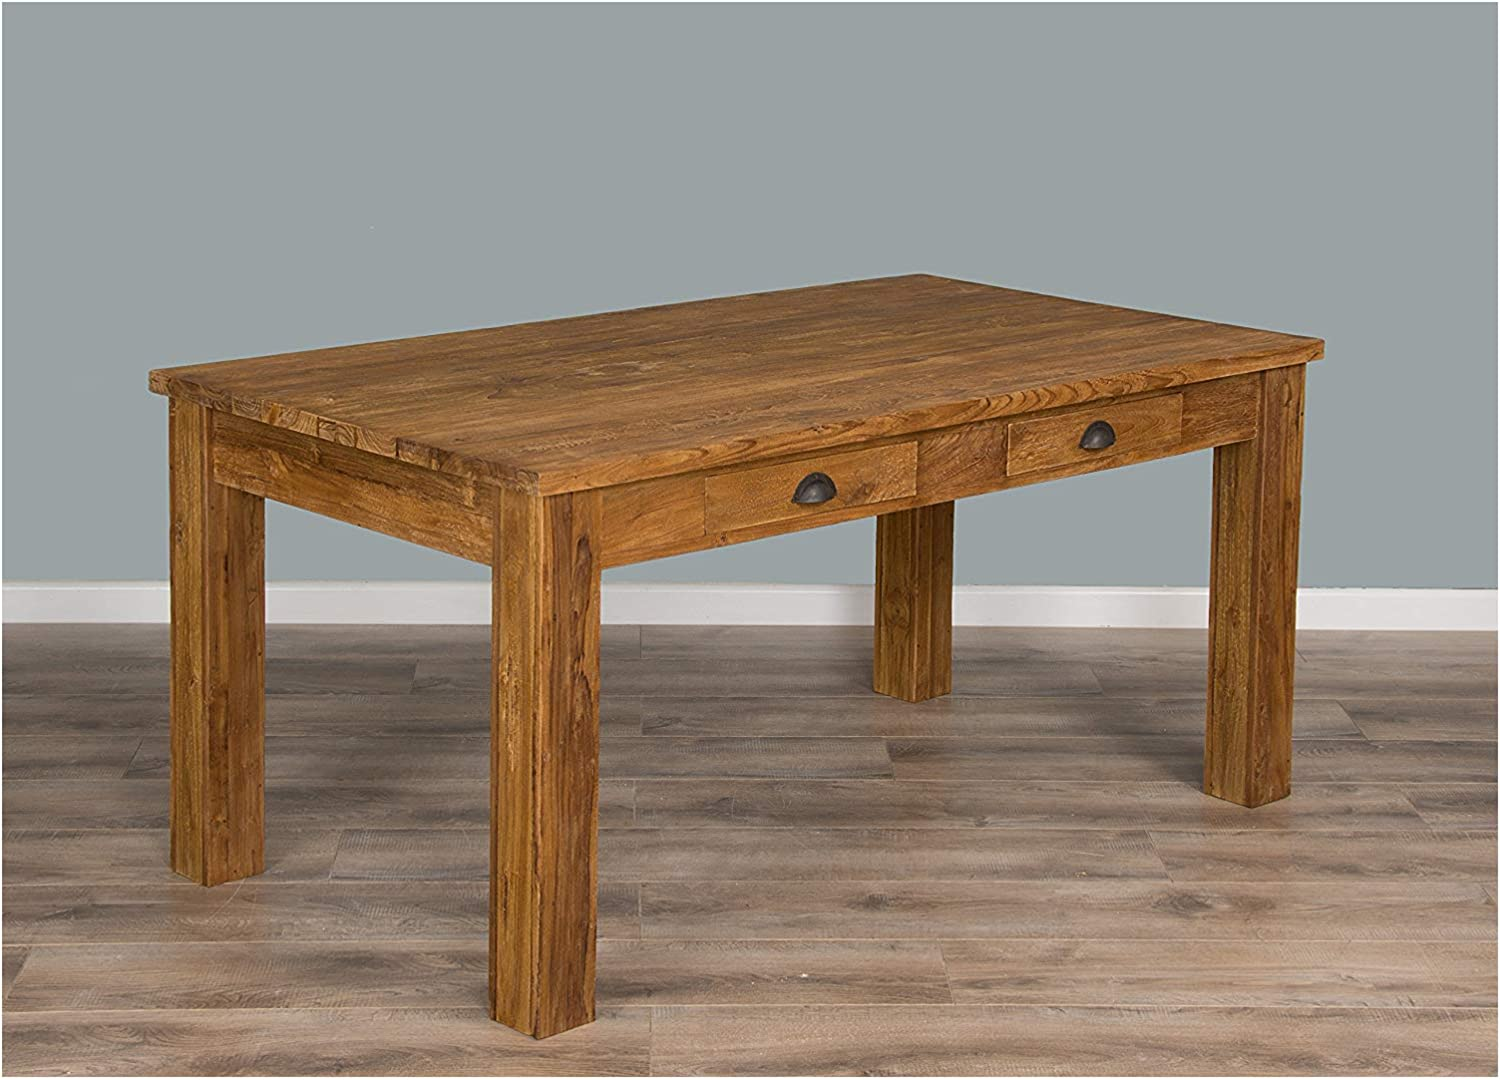 Inspiring Furniture Ltd 2m Rustic Recycled Teak Dining Table With Drawers 160cm X 90cm Amazon Co Uk Kitchen Home